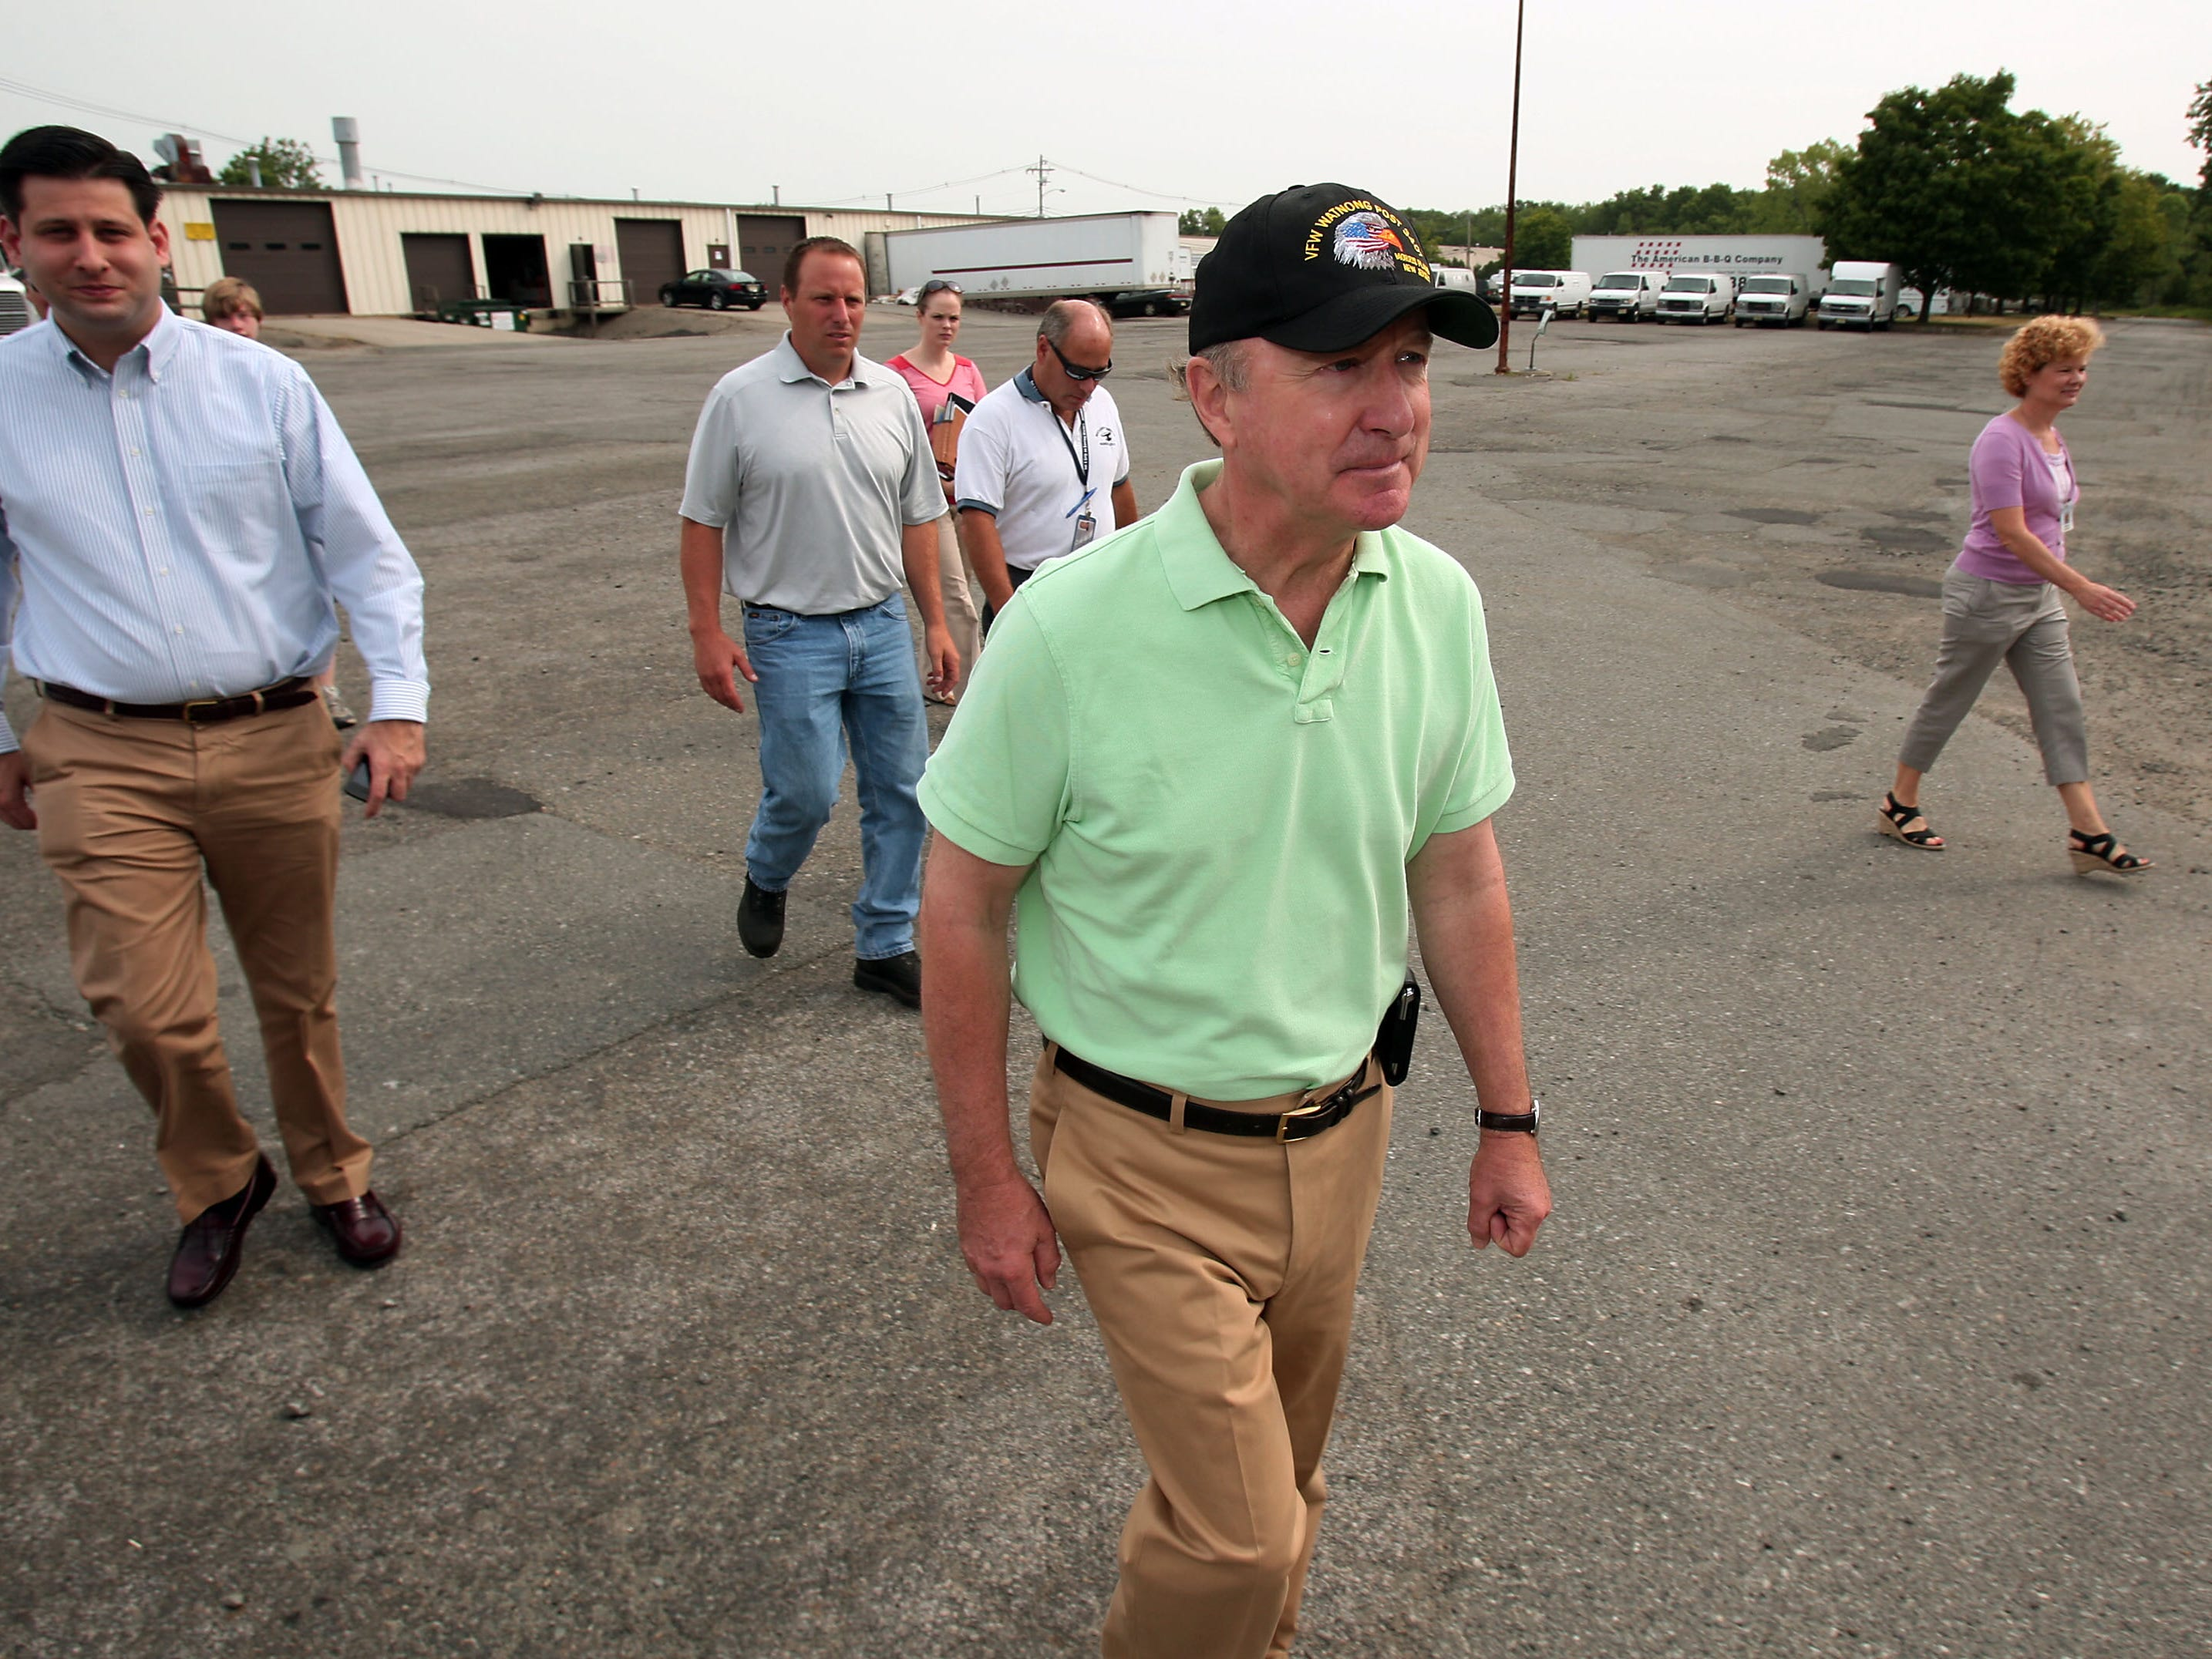 Rep. Rodney Frelinghuysen arrives at Denville Technical Park Friday during his tour of six Superfund sites in Morris and Essex counties. For an online photo gallery of the tour, go to DailyRecord.com. Bob Karp/Staff Photographer